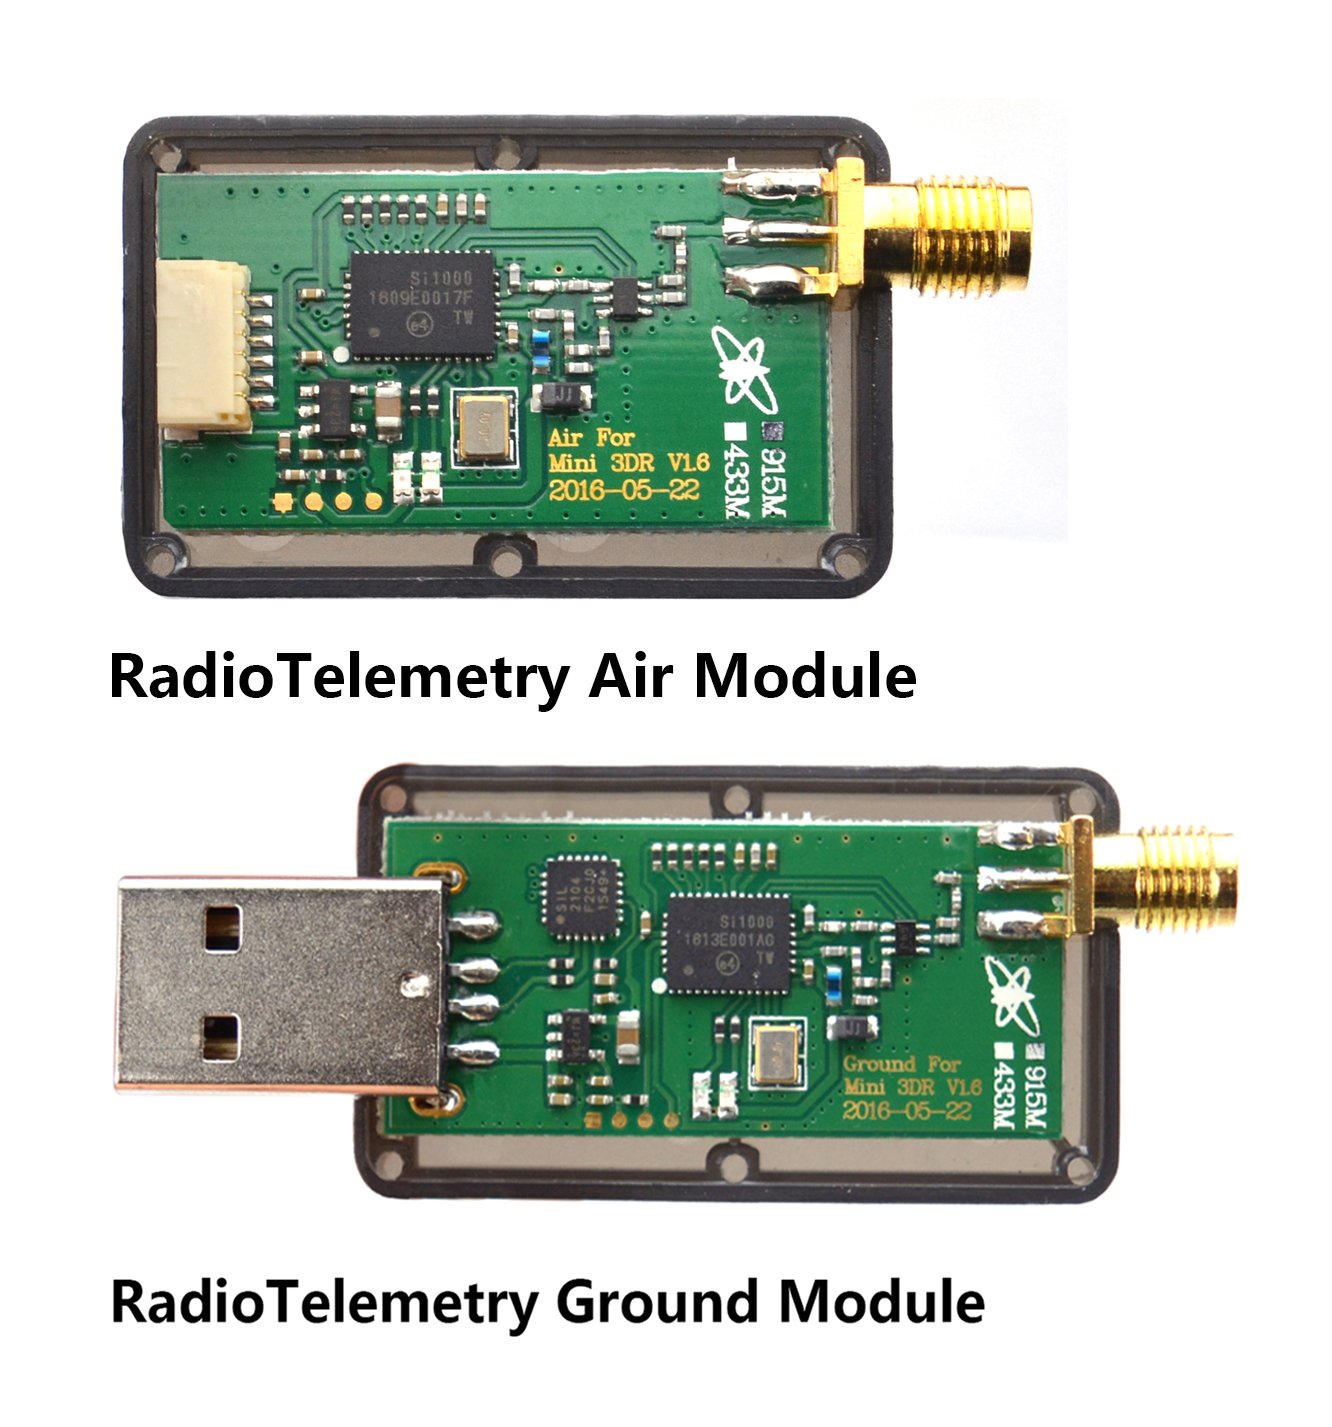 Readytosky 3DR Radio Telemetry Kit 915Mhz 100mW Air + Ground Module Open Source for Standard Version APM2.6 APM2.8 pixhawk 2.4.6 2.4.8 Flight Controller by Readytosky (Image #6)